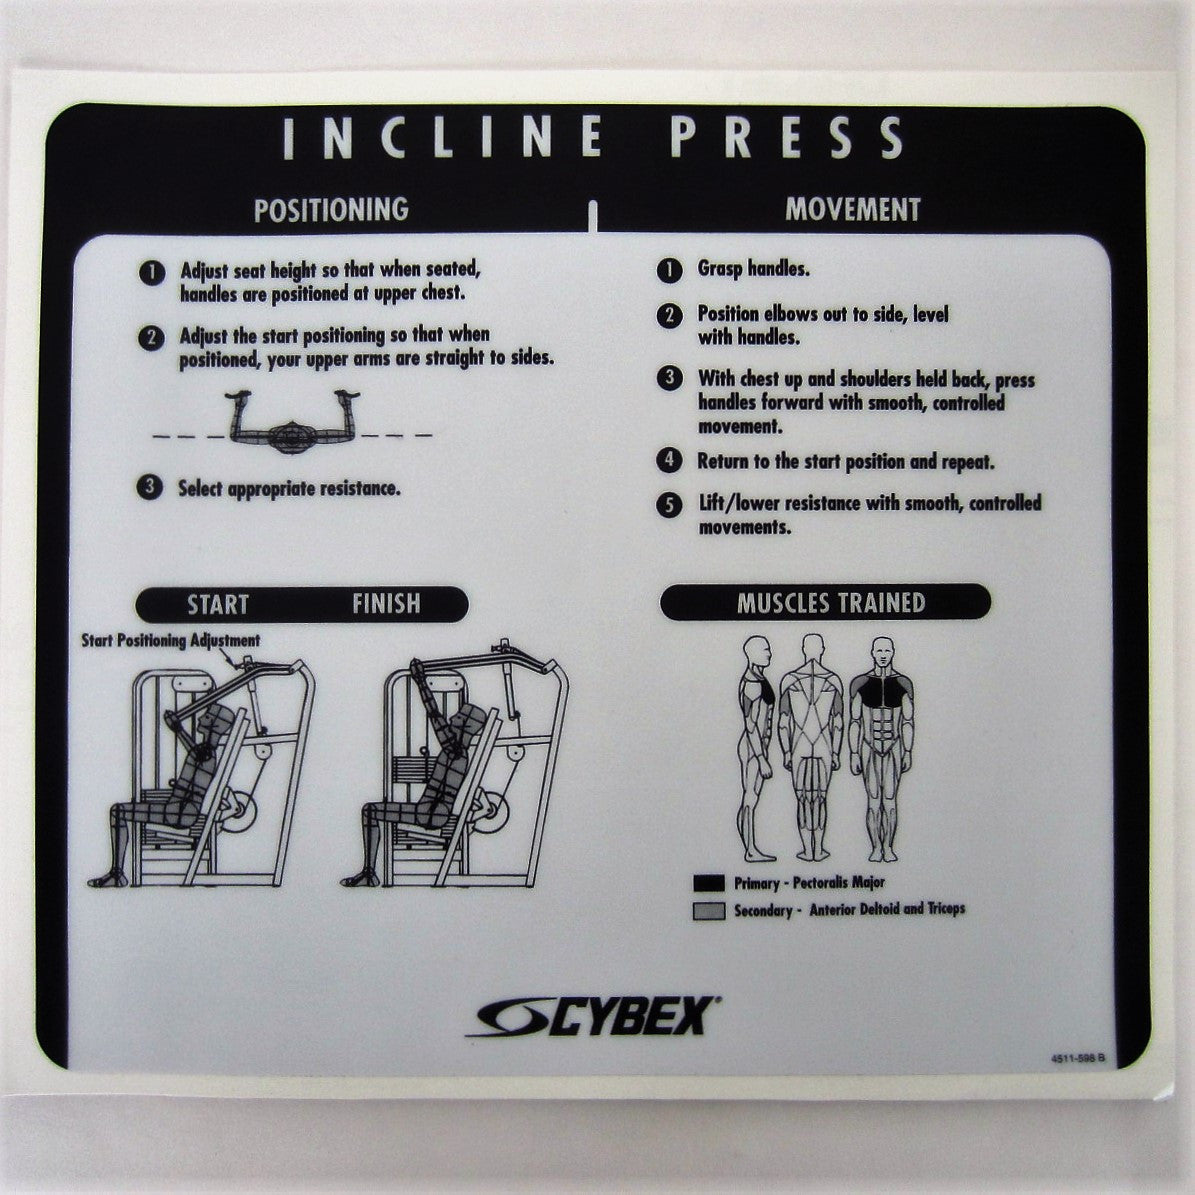 Cybex VR2 Incline Press